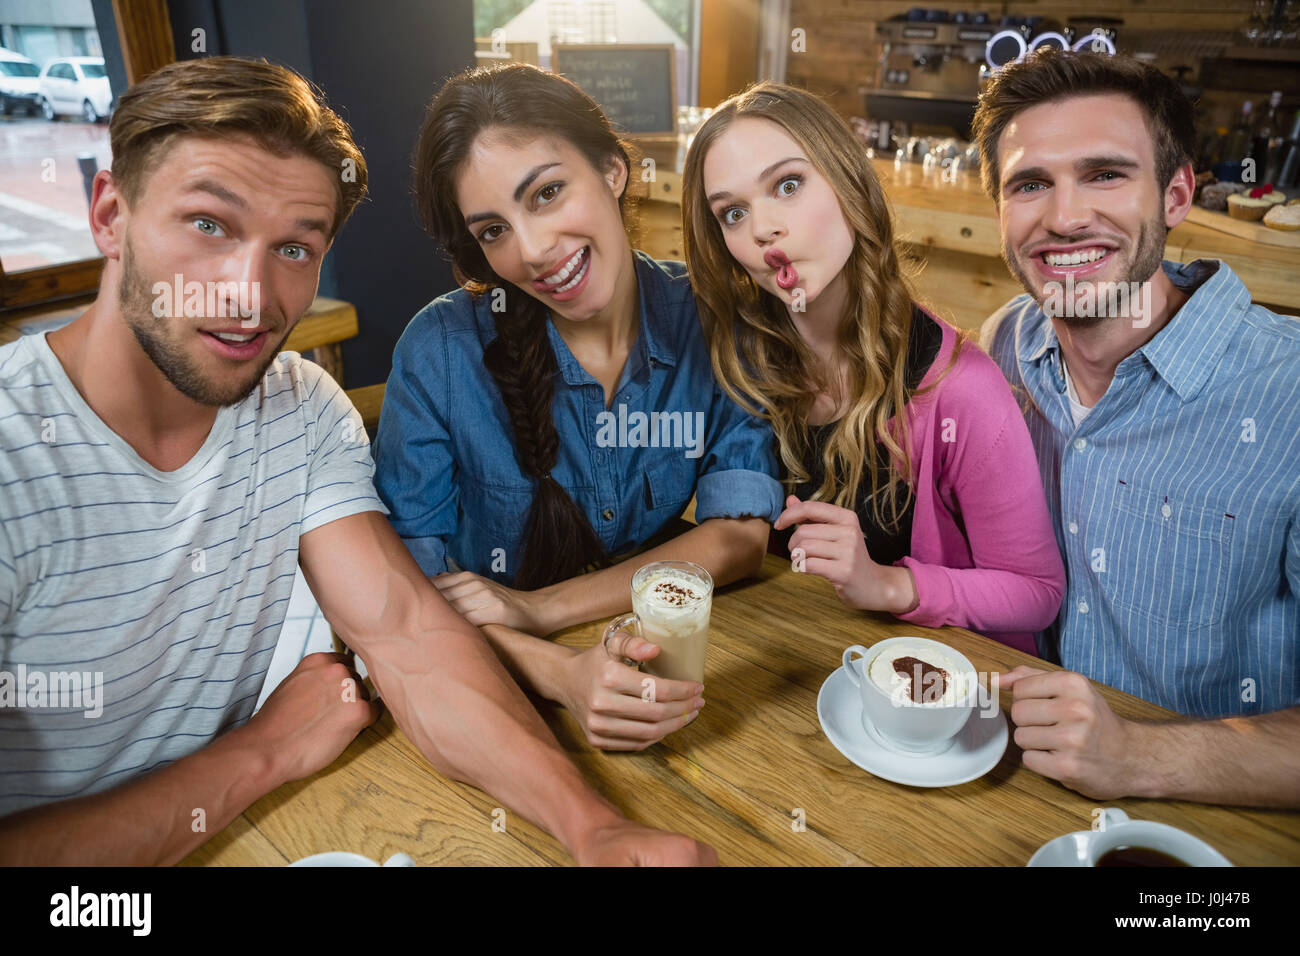 Portrait of happy friends making faces while having coffee in café Photo Stock